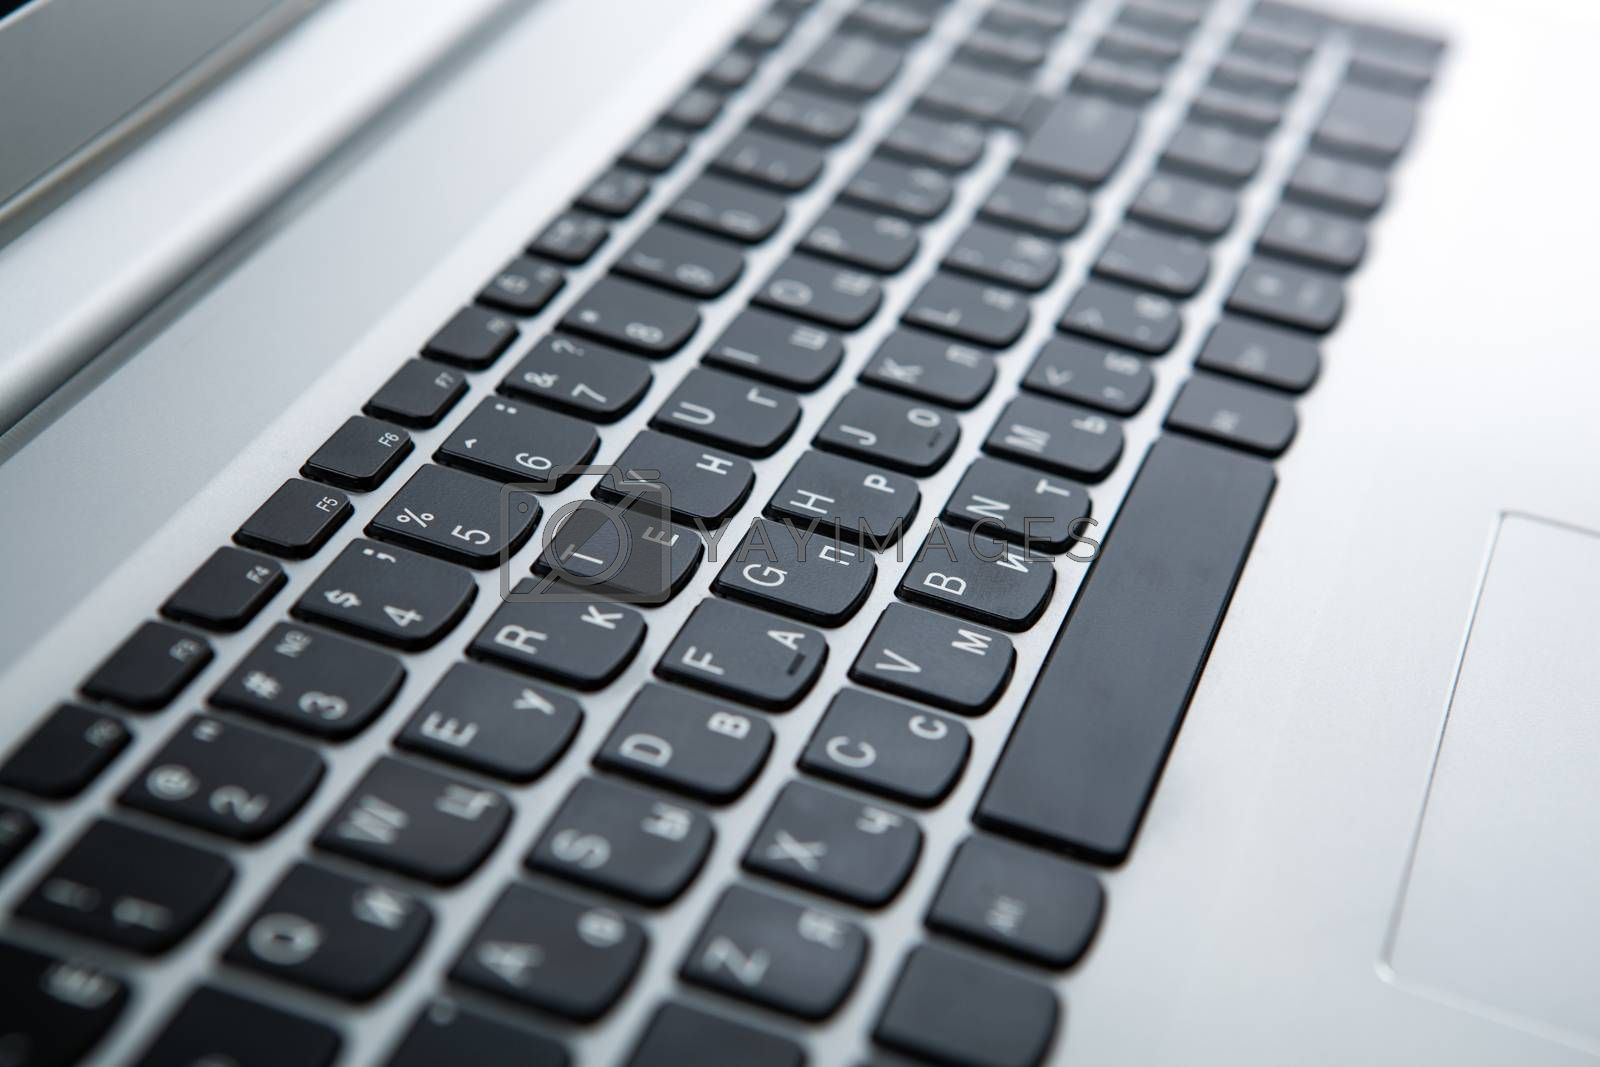 Royalty free image of modern gray laptop on a table on close up by mizar_21984